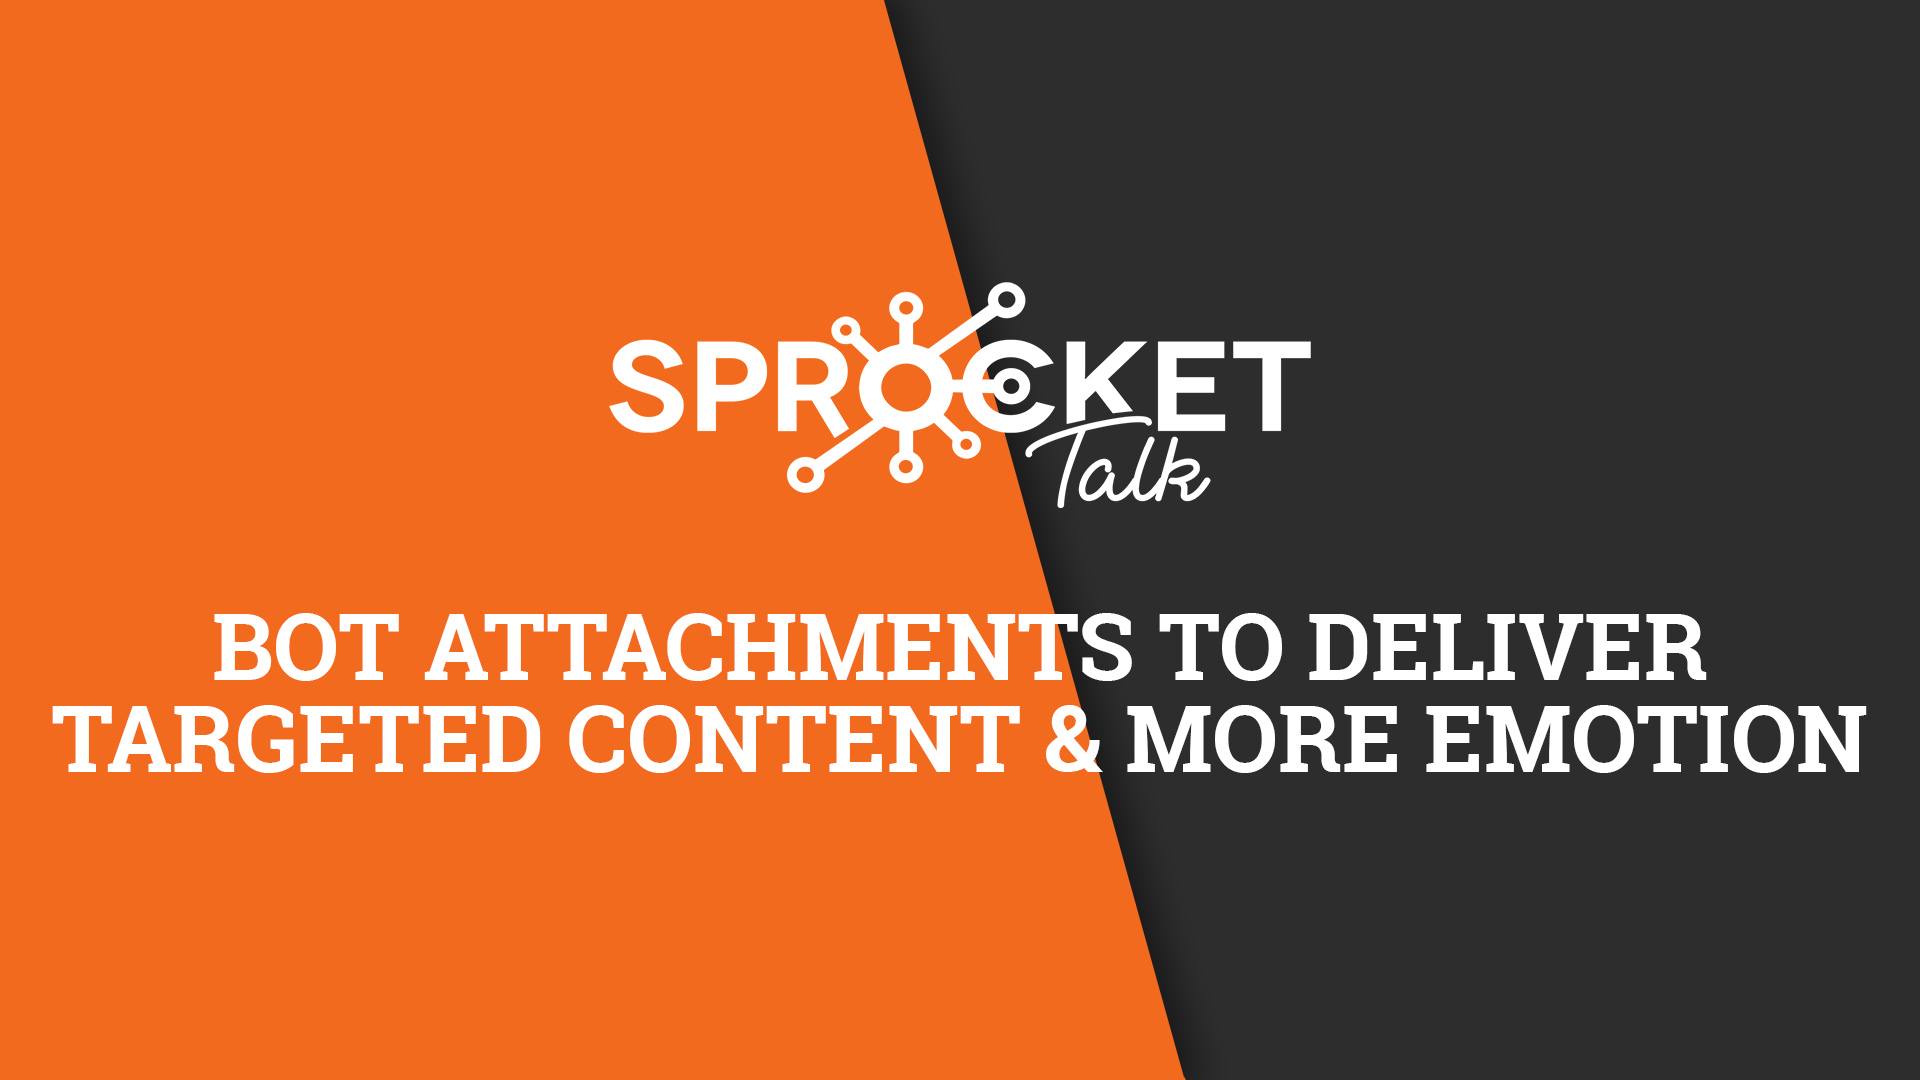 Bot Attachments to Deliver Targeted Content and More Emotion